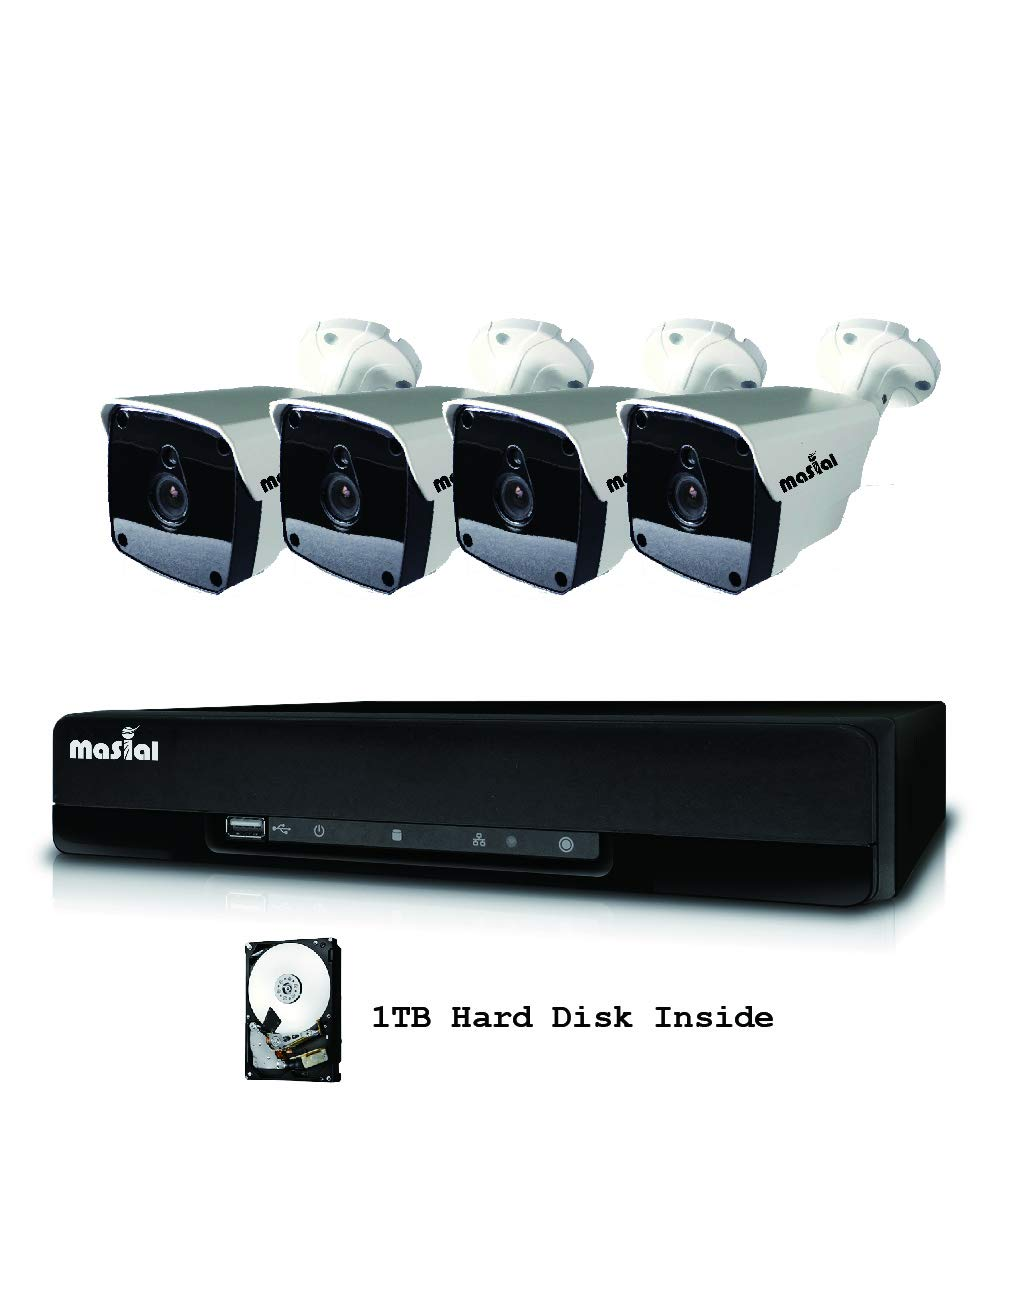 Masial 8CH Home Security Camera System, 1080P DVR Recorder Supports HD-AHD TVI CVI, with 4X HD 1080P Indoor Outdoor Weatherproof CCTV Cameras, 1TB Hard Drive, Smartphone, PC Easy Remote Access